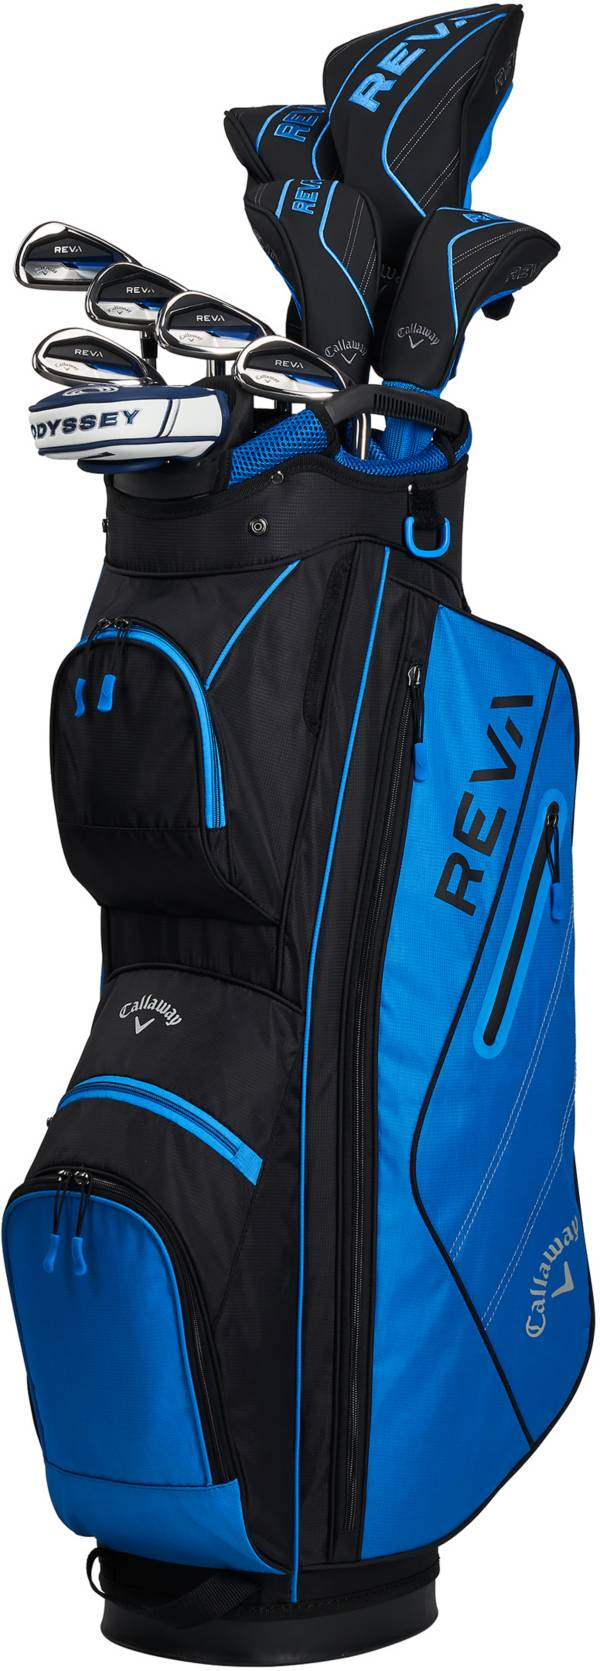 Callaway Women's REVA 11-Piece Complete Set – (Graphite) product image